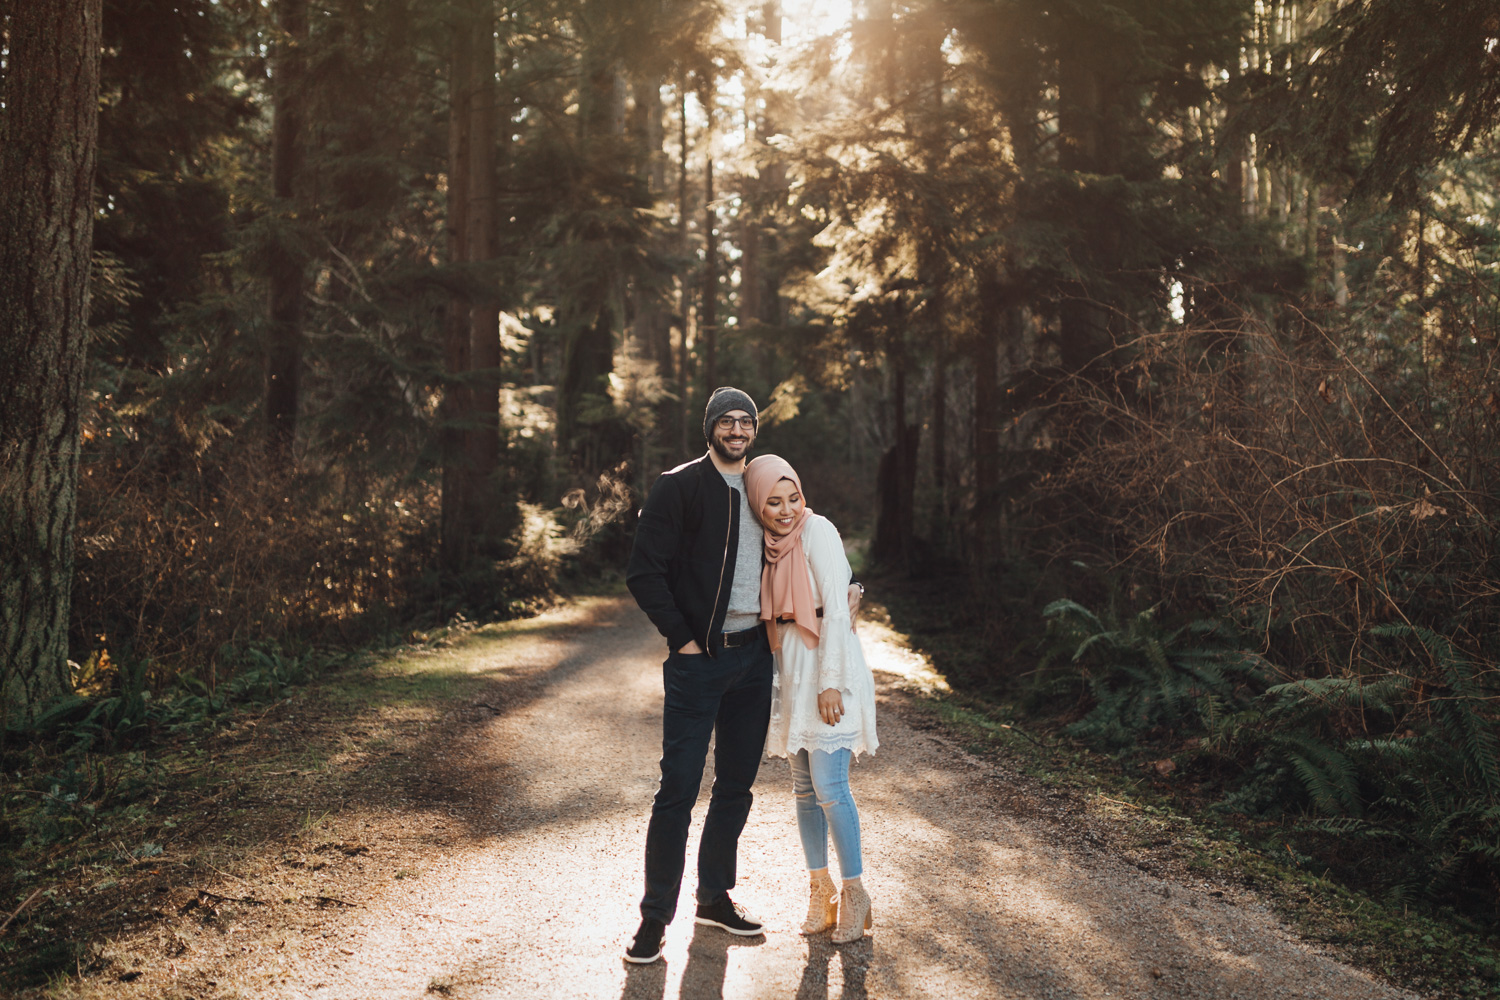 engagement photography in stanley park during winter